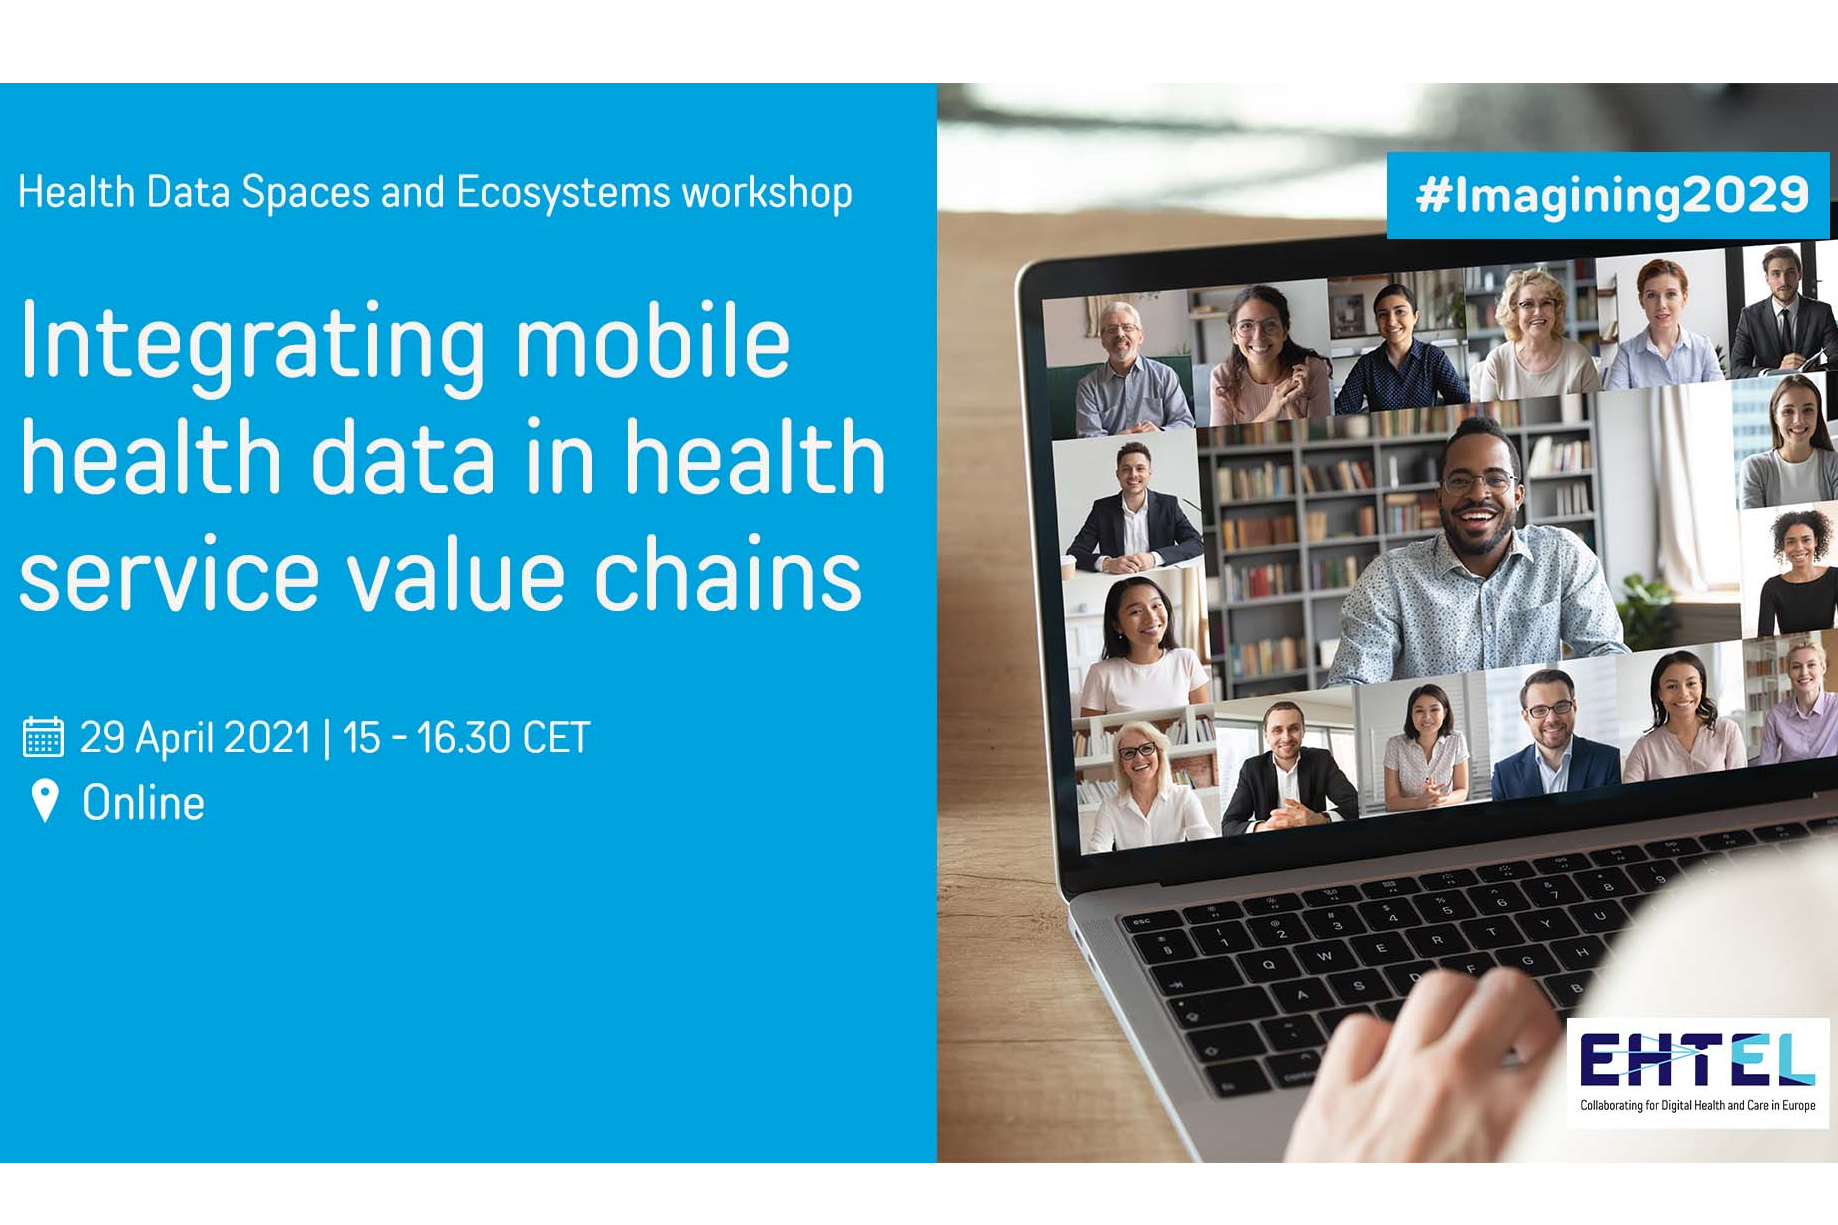 Integrating mobile health data in health service value chains